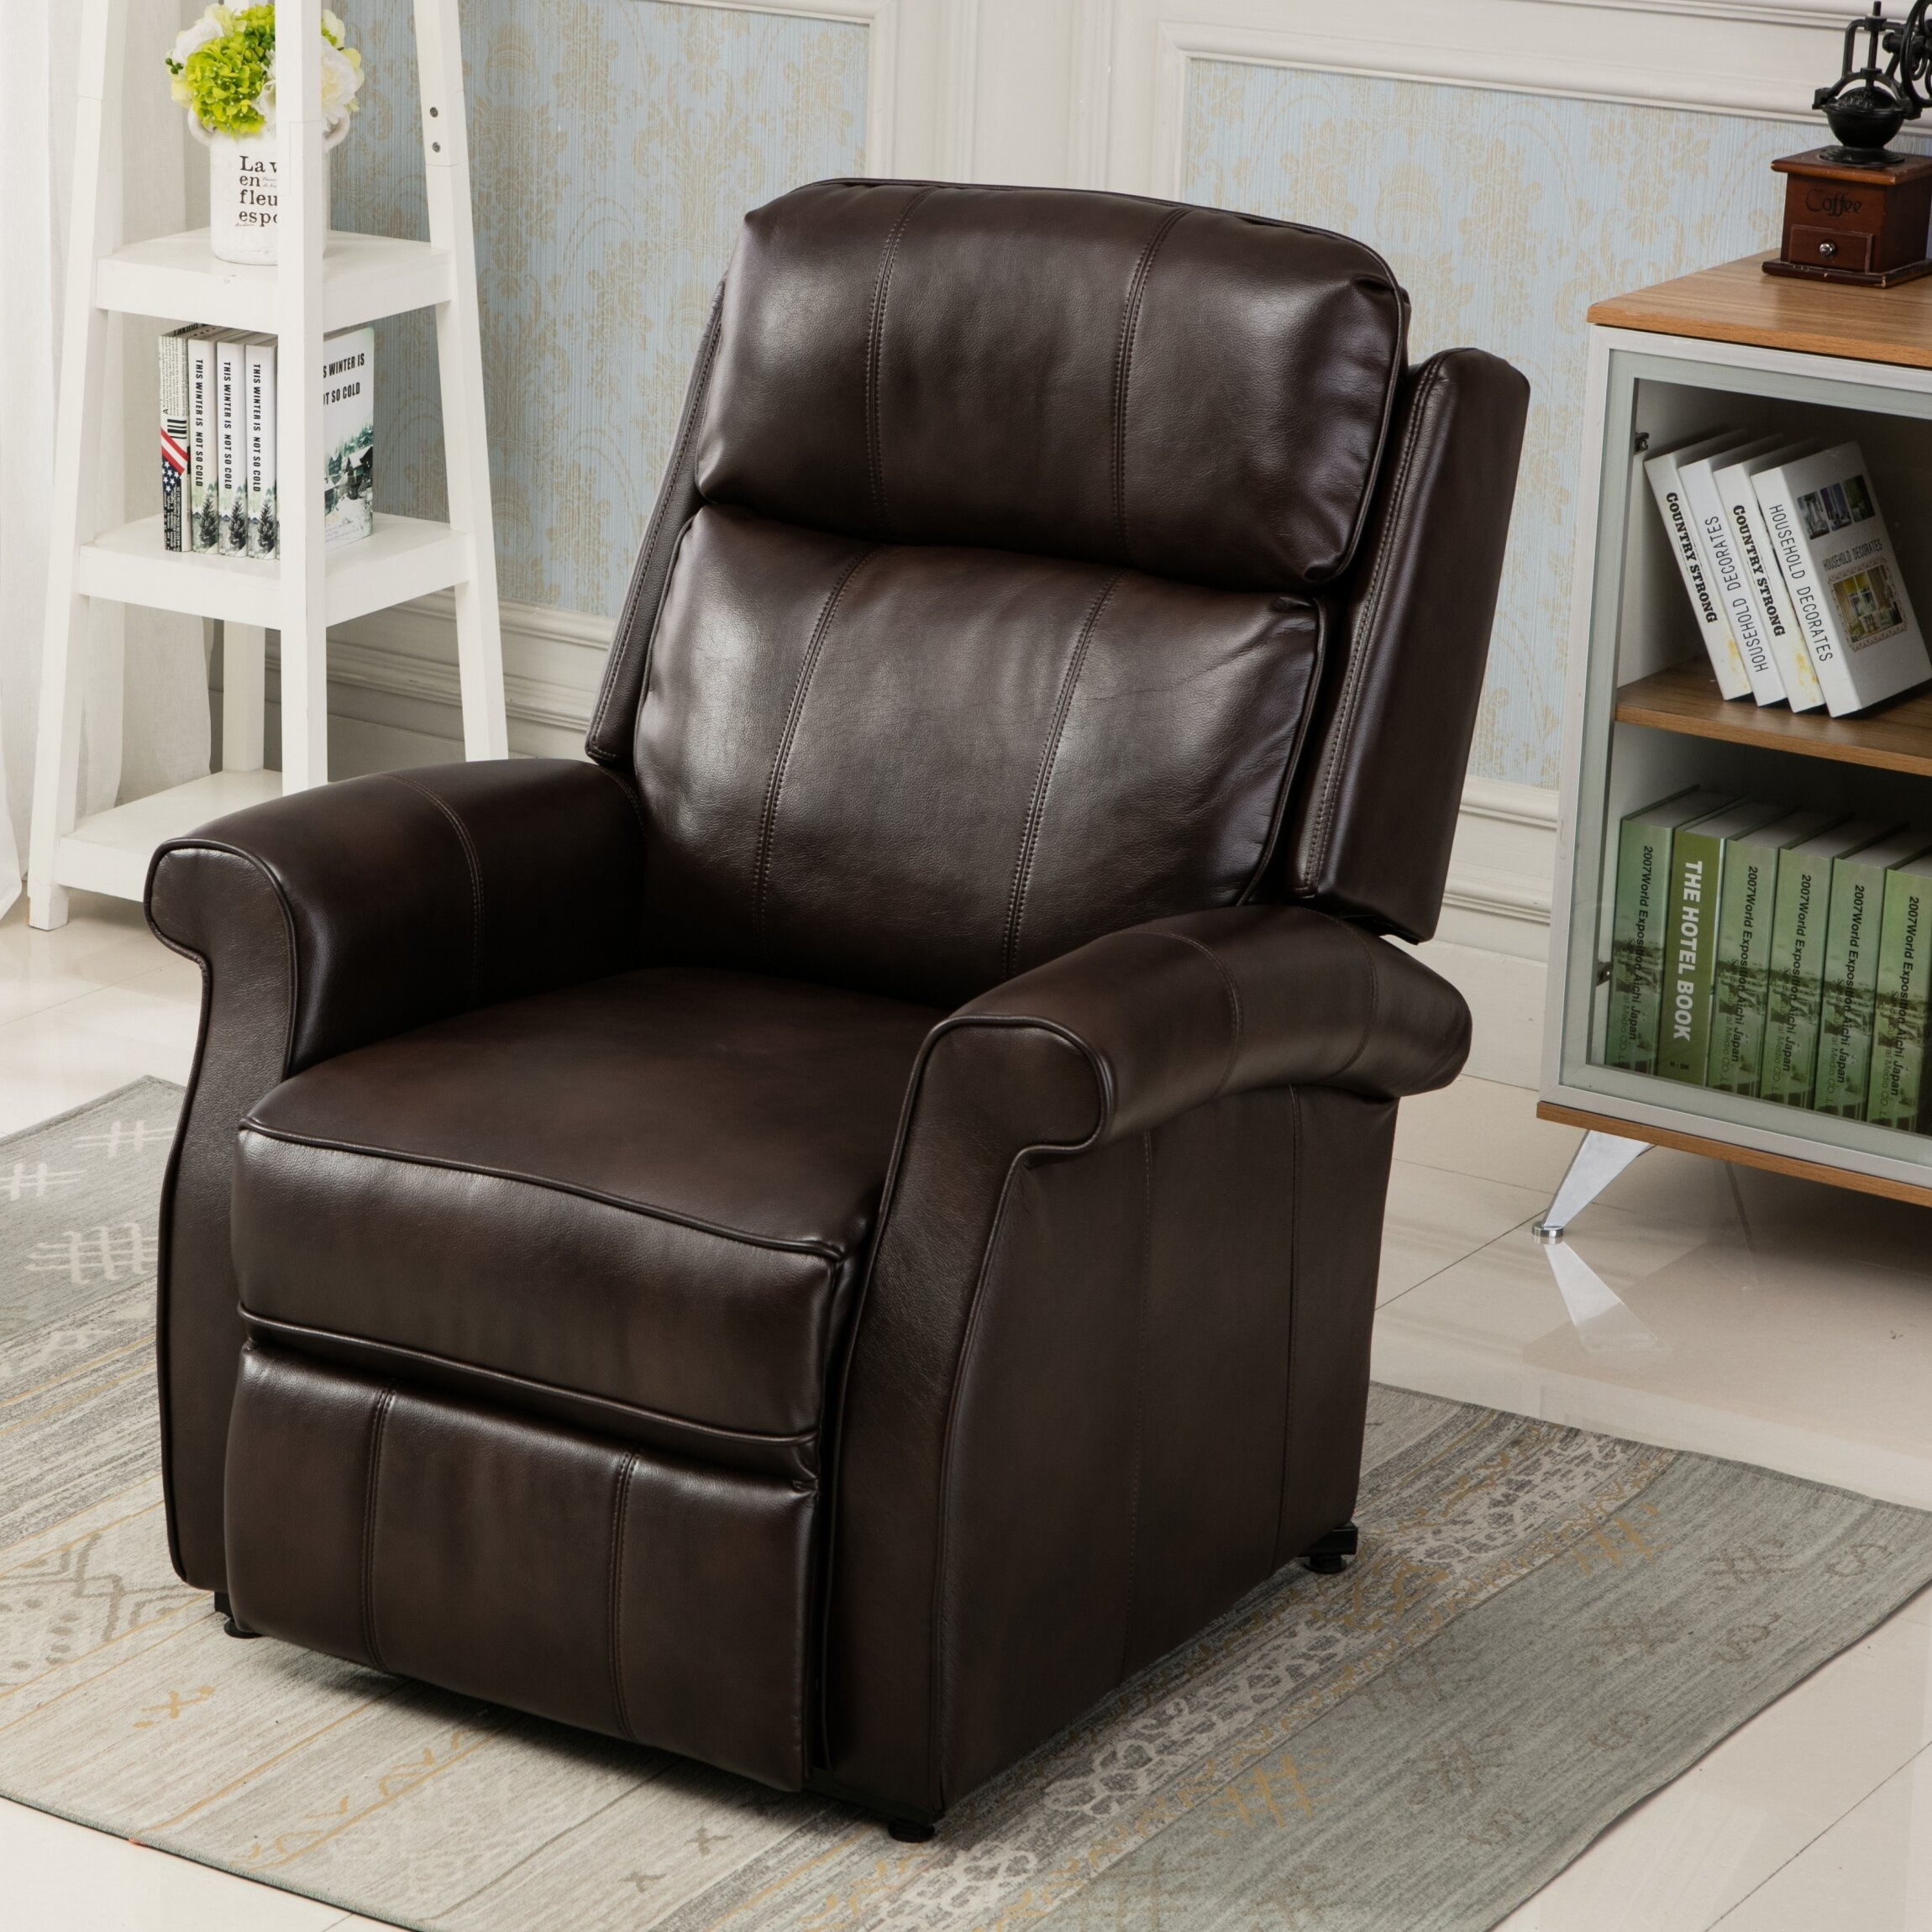 Comfort Pointe Lehman Leather Power Lift Assist Recliner Reviews